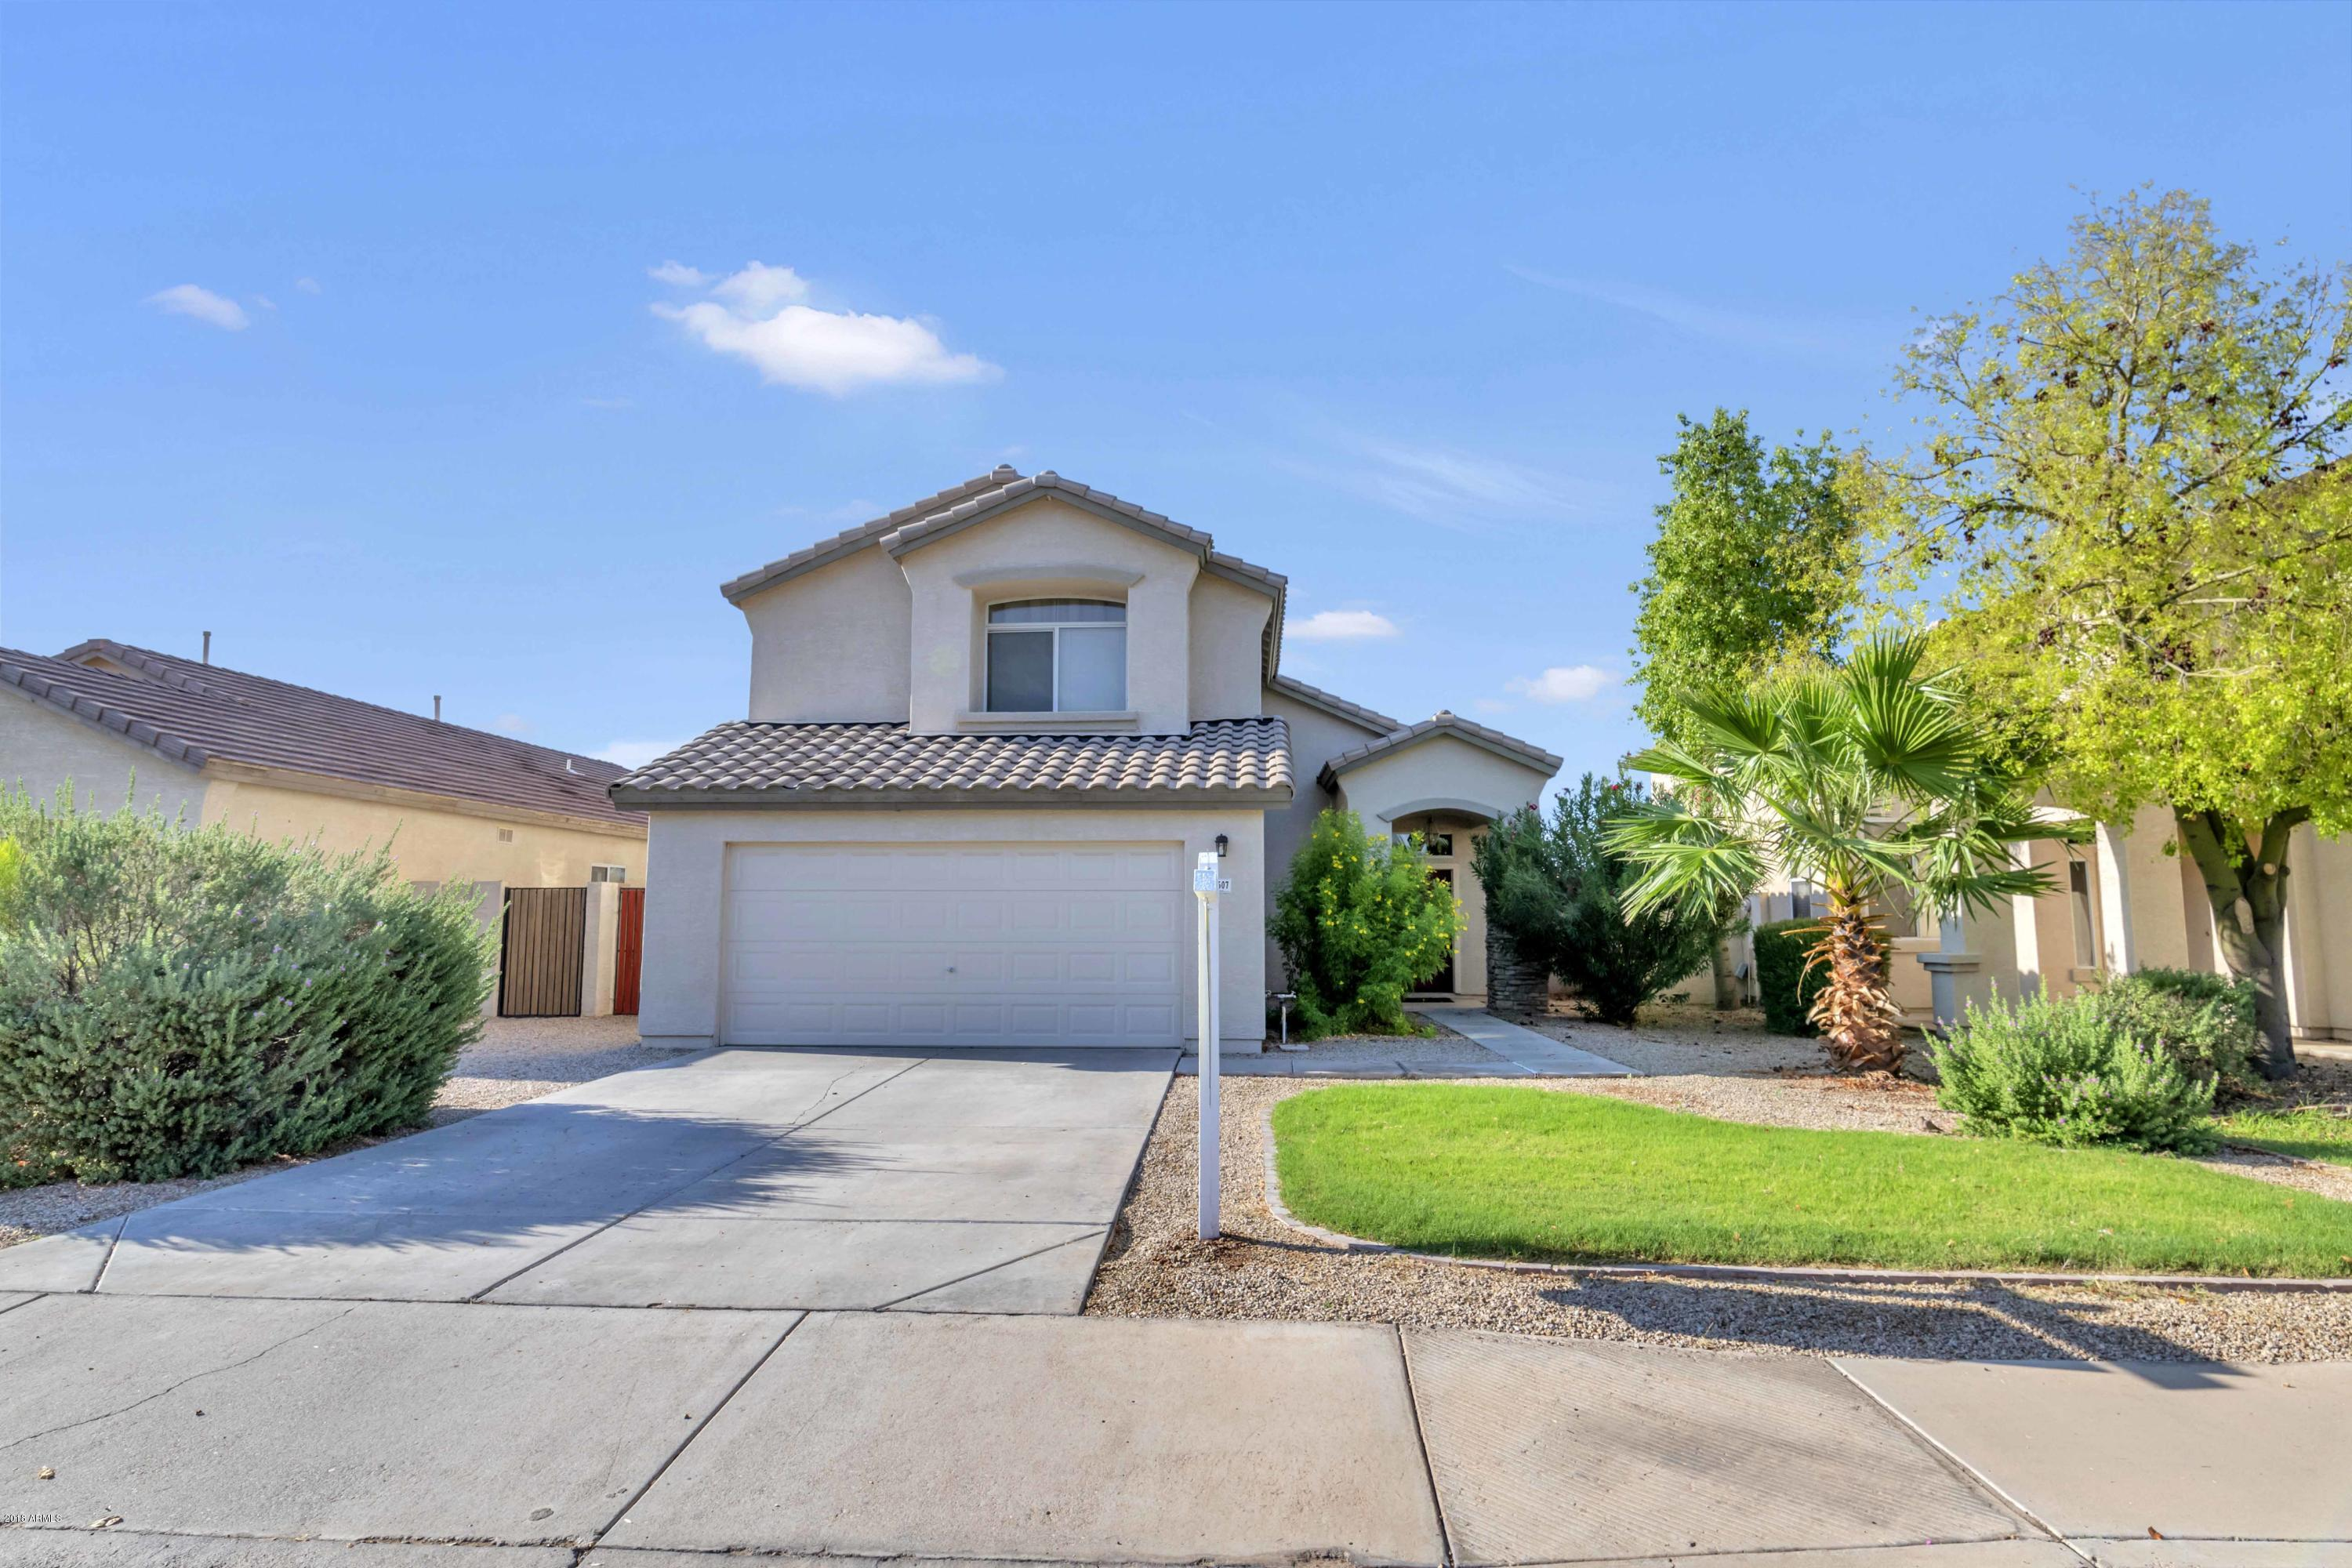 2607 E BROOKS Street, Gilbert, Arizona